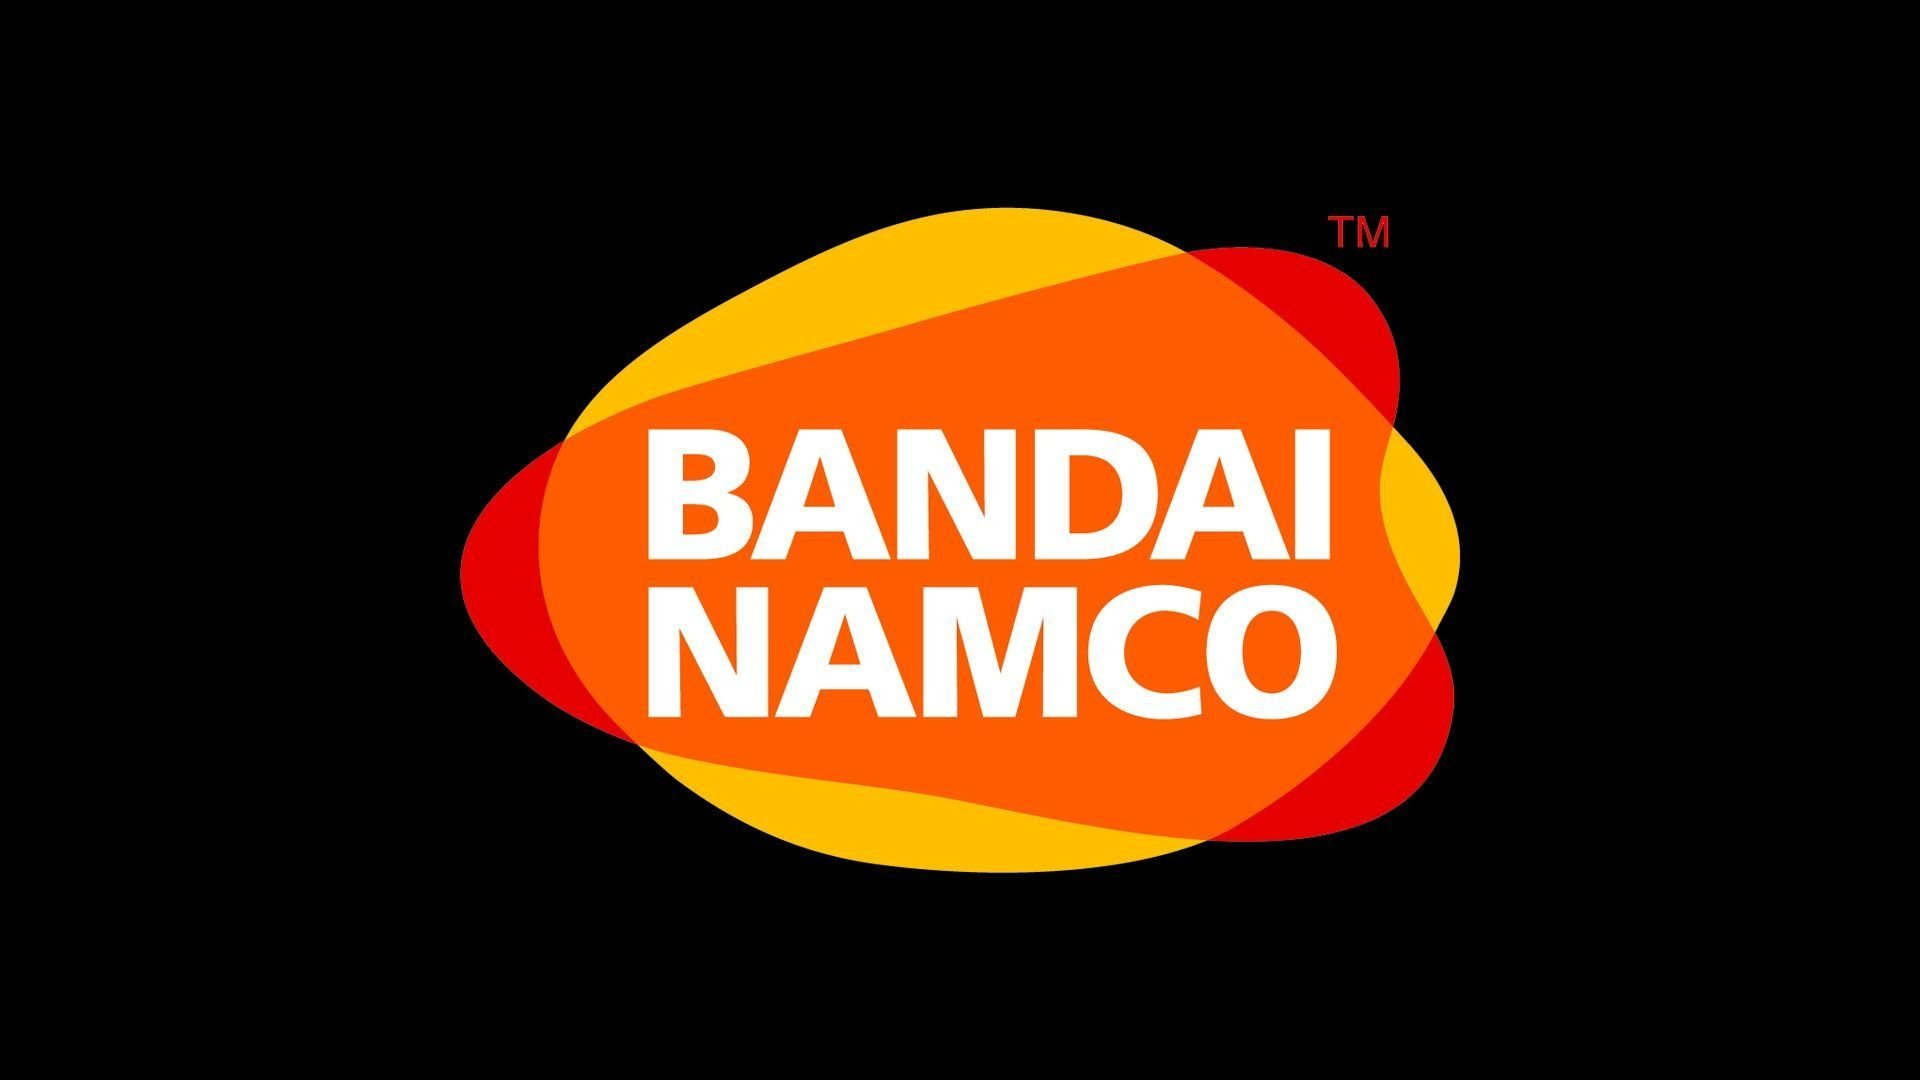 https://www.pdvg.it/wp-content/uploads/2019/08/Bandai-Namco-Imm.-Evid..jpg